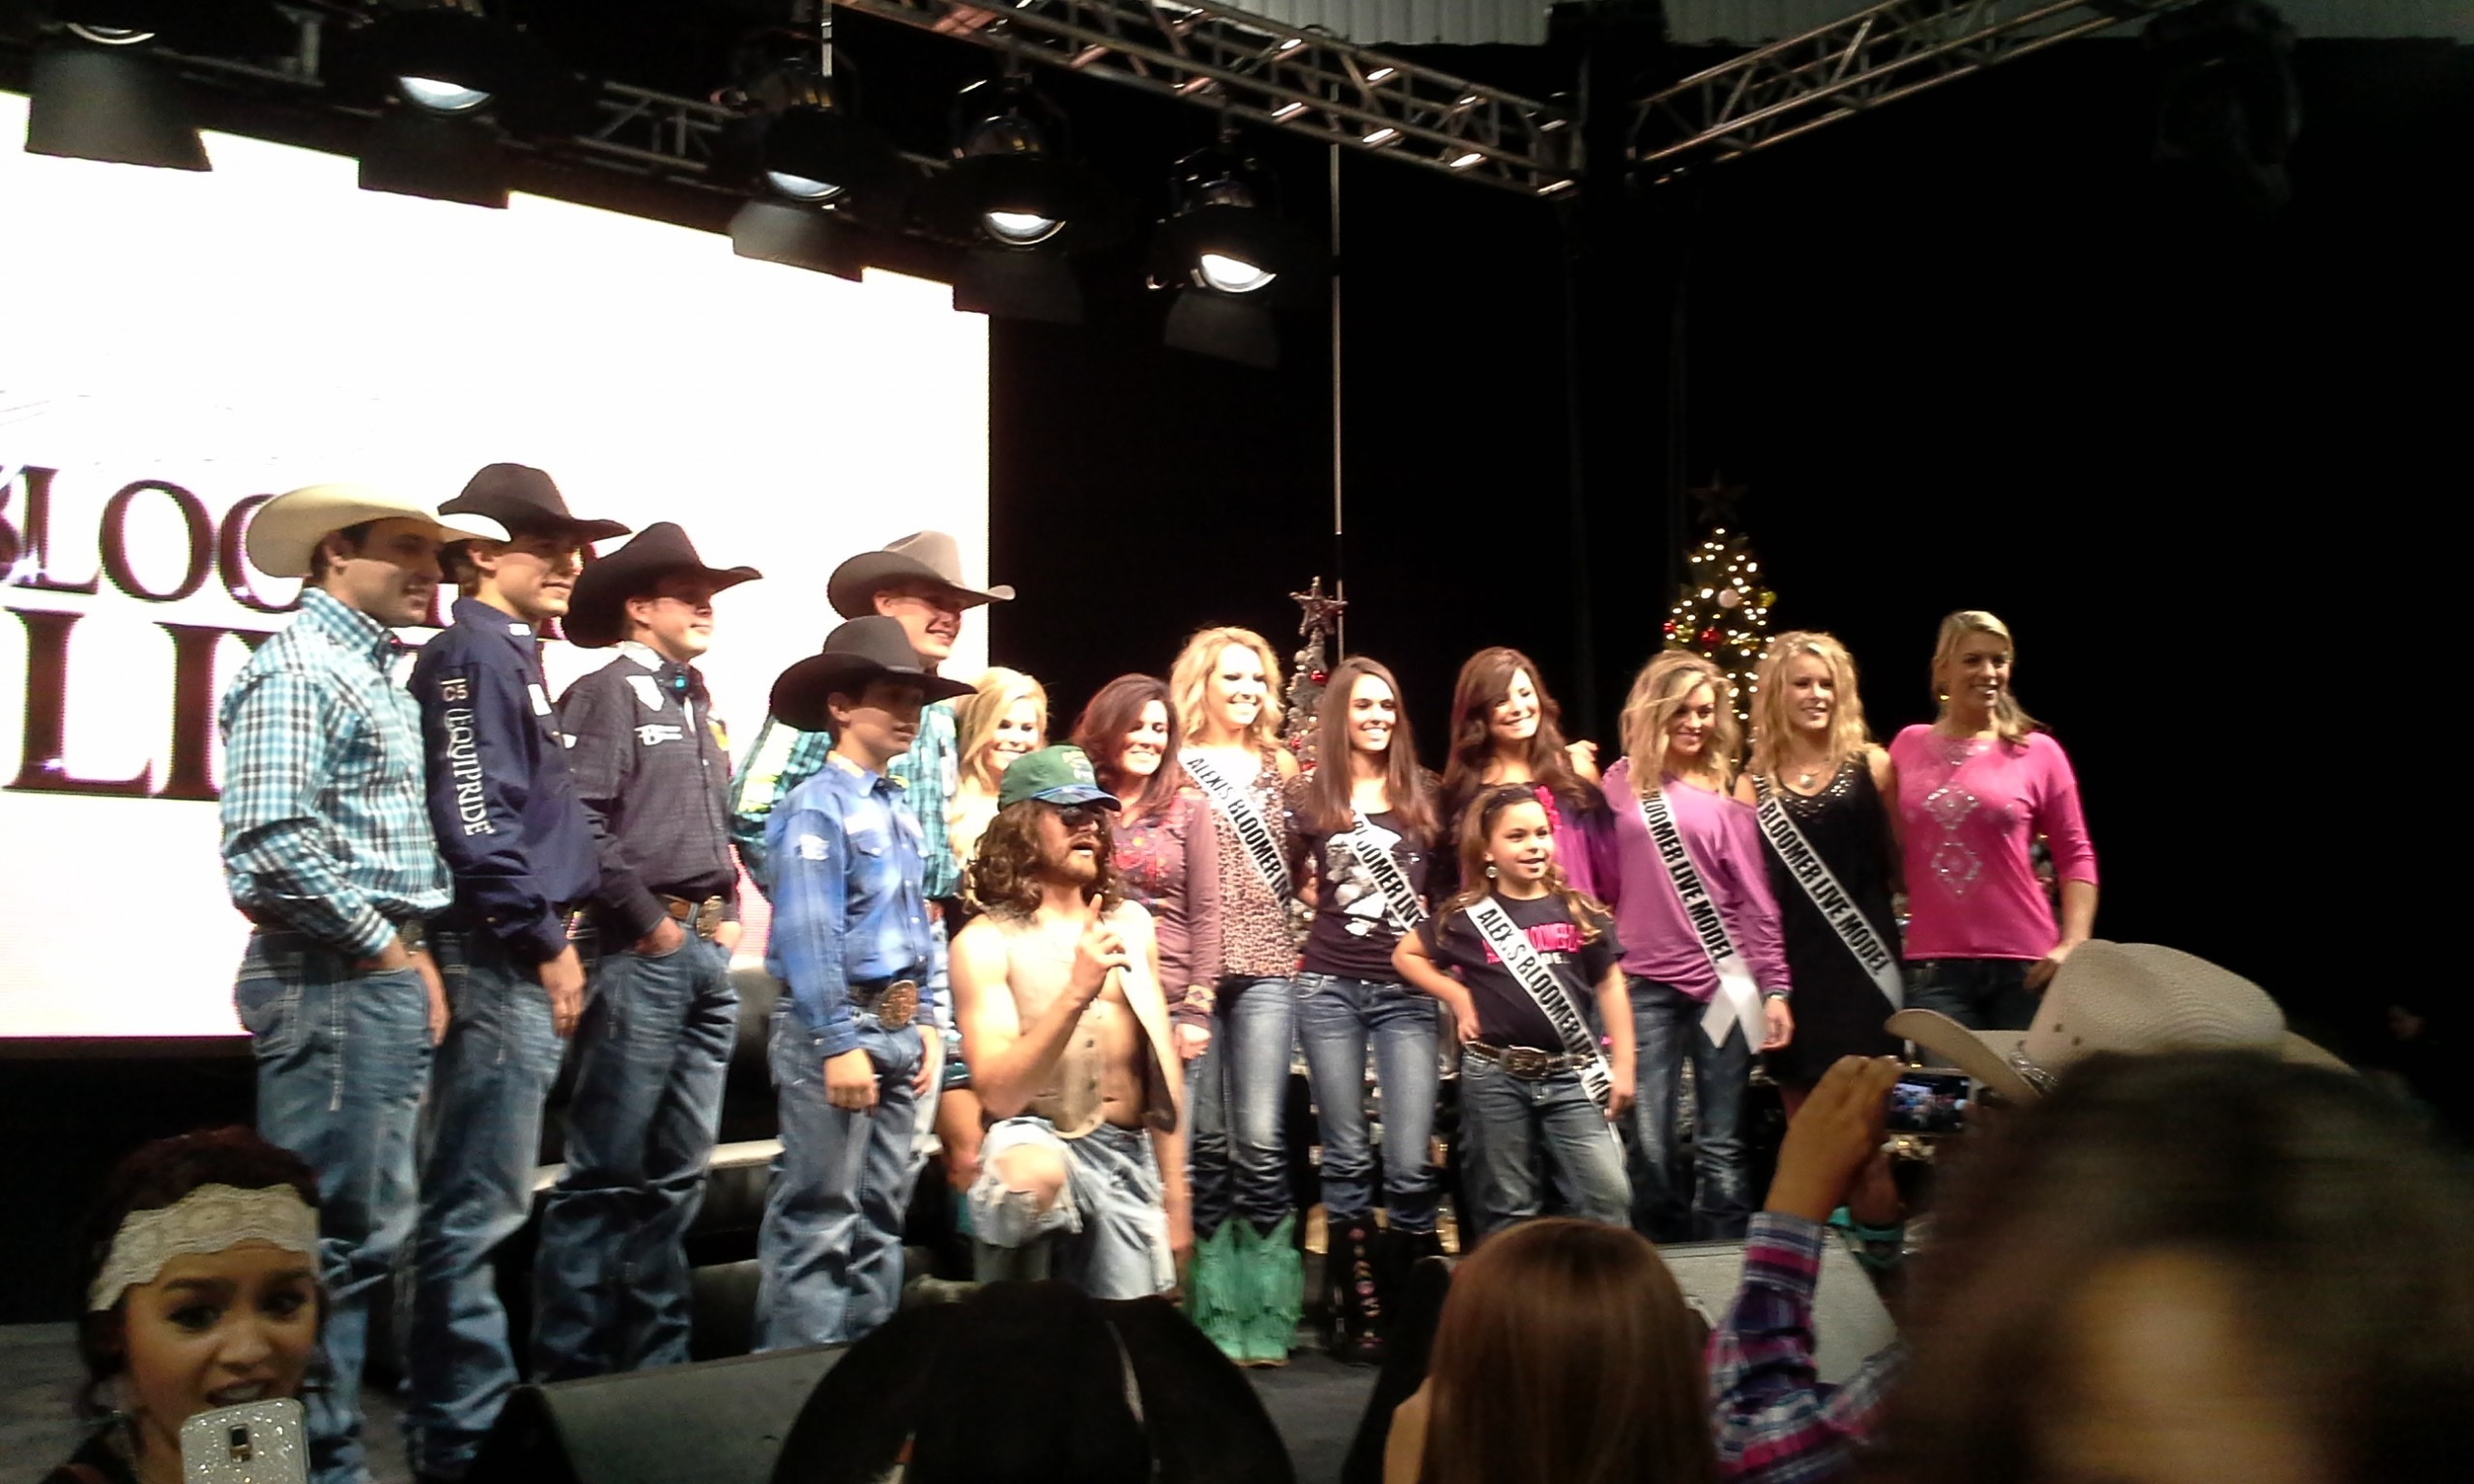 A Peek At The Cowboy Christmas Gift Show In Las Vegas